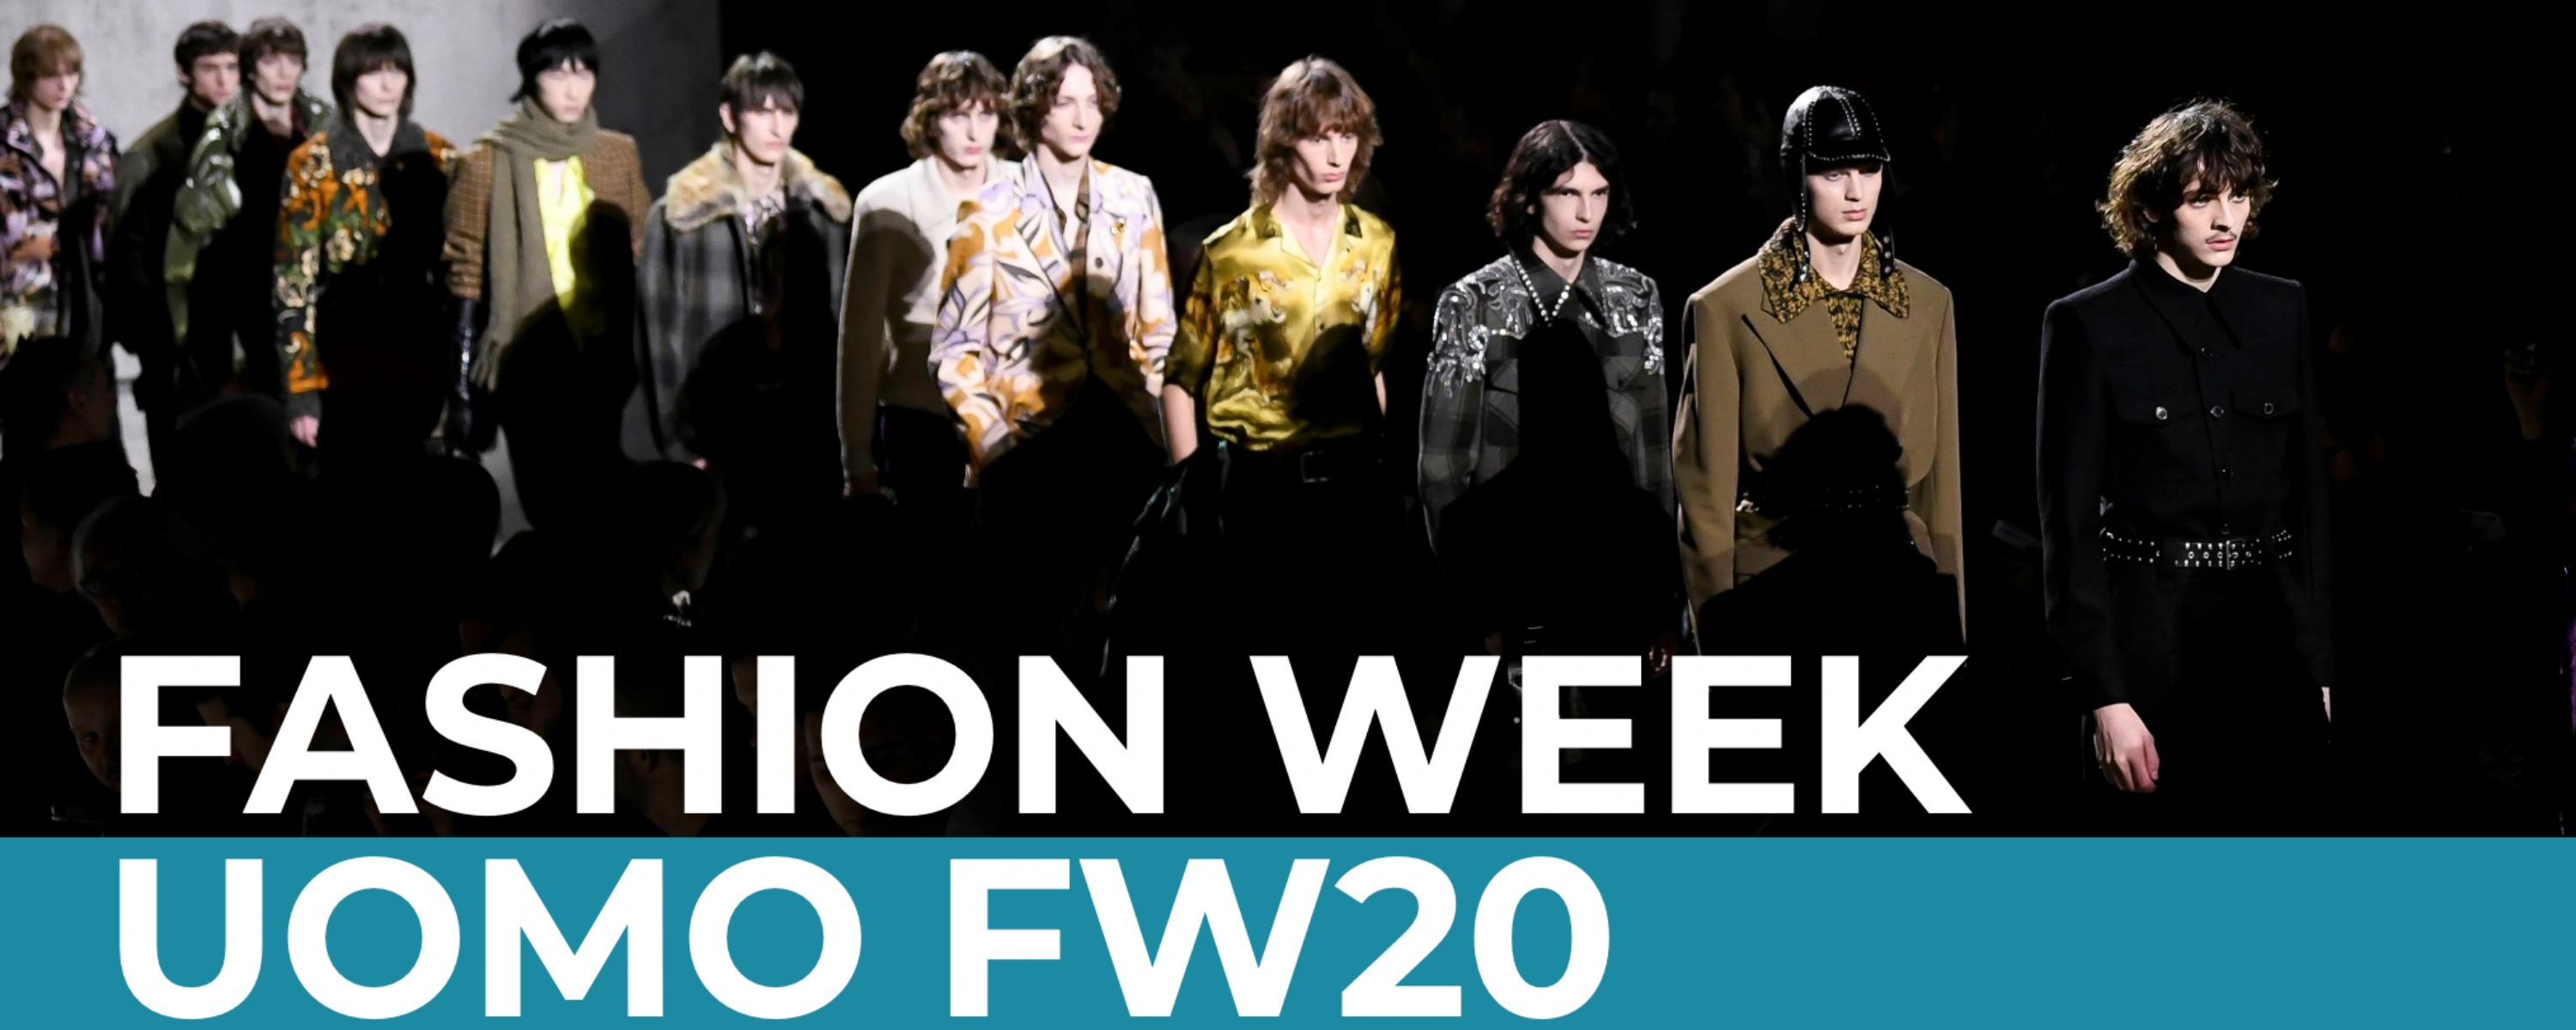 Fashion Week Uomo FW20